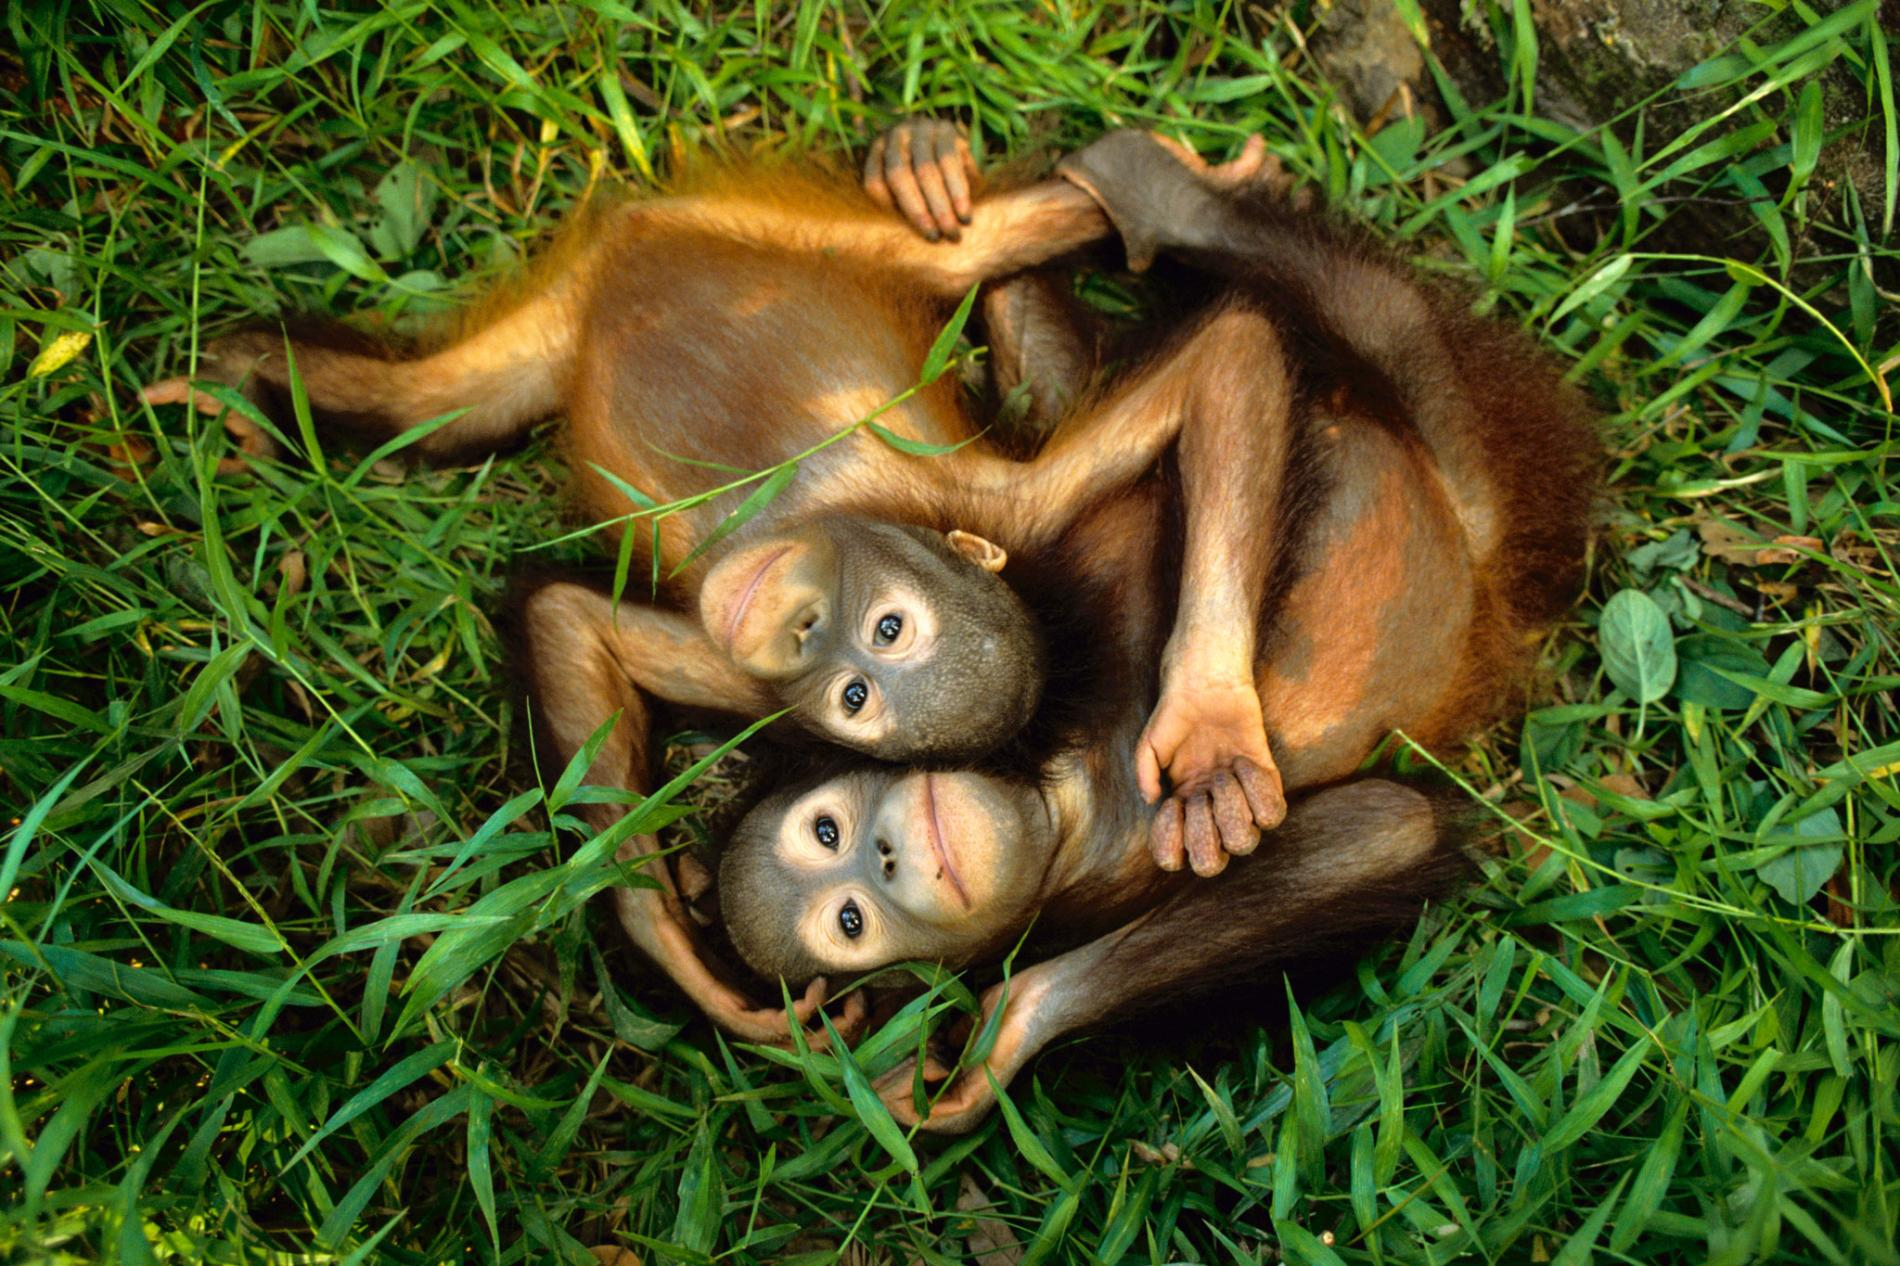 Cuddle Time These orphaned Bornean orangutans, Pongo pygmaeus, cuddle at the Sepilok Reserve in Sabah, Borneo, which is part of Malaysia. The Sepilok Orangutan Rehabilitation Centre was founded in 1964 to help such orphans.